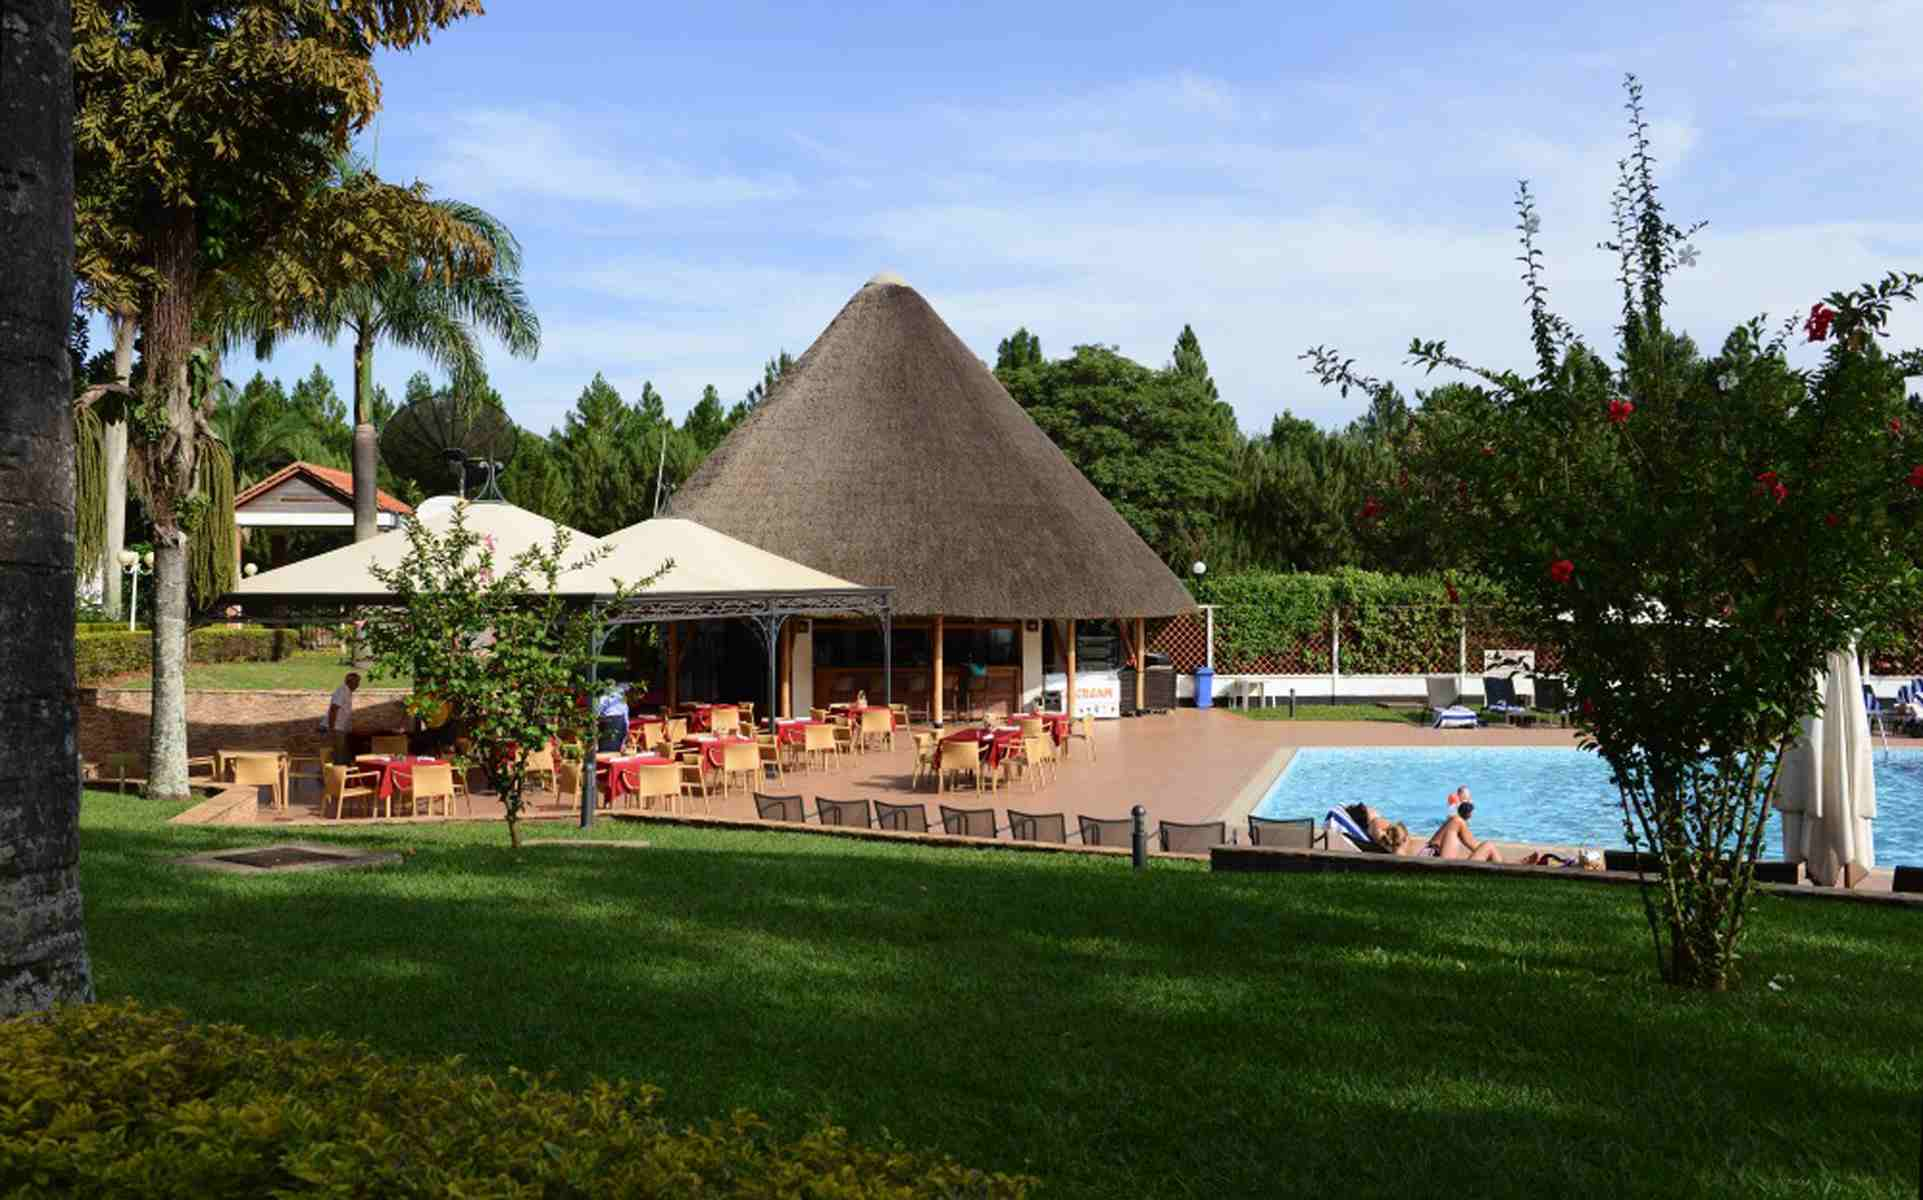 Entebbe Airport Hotel